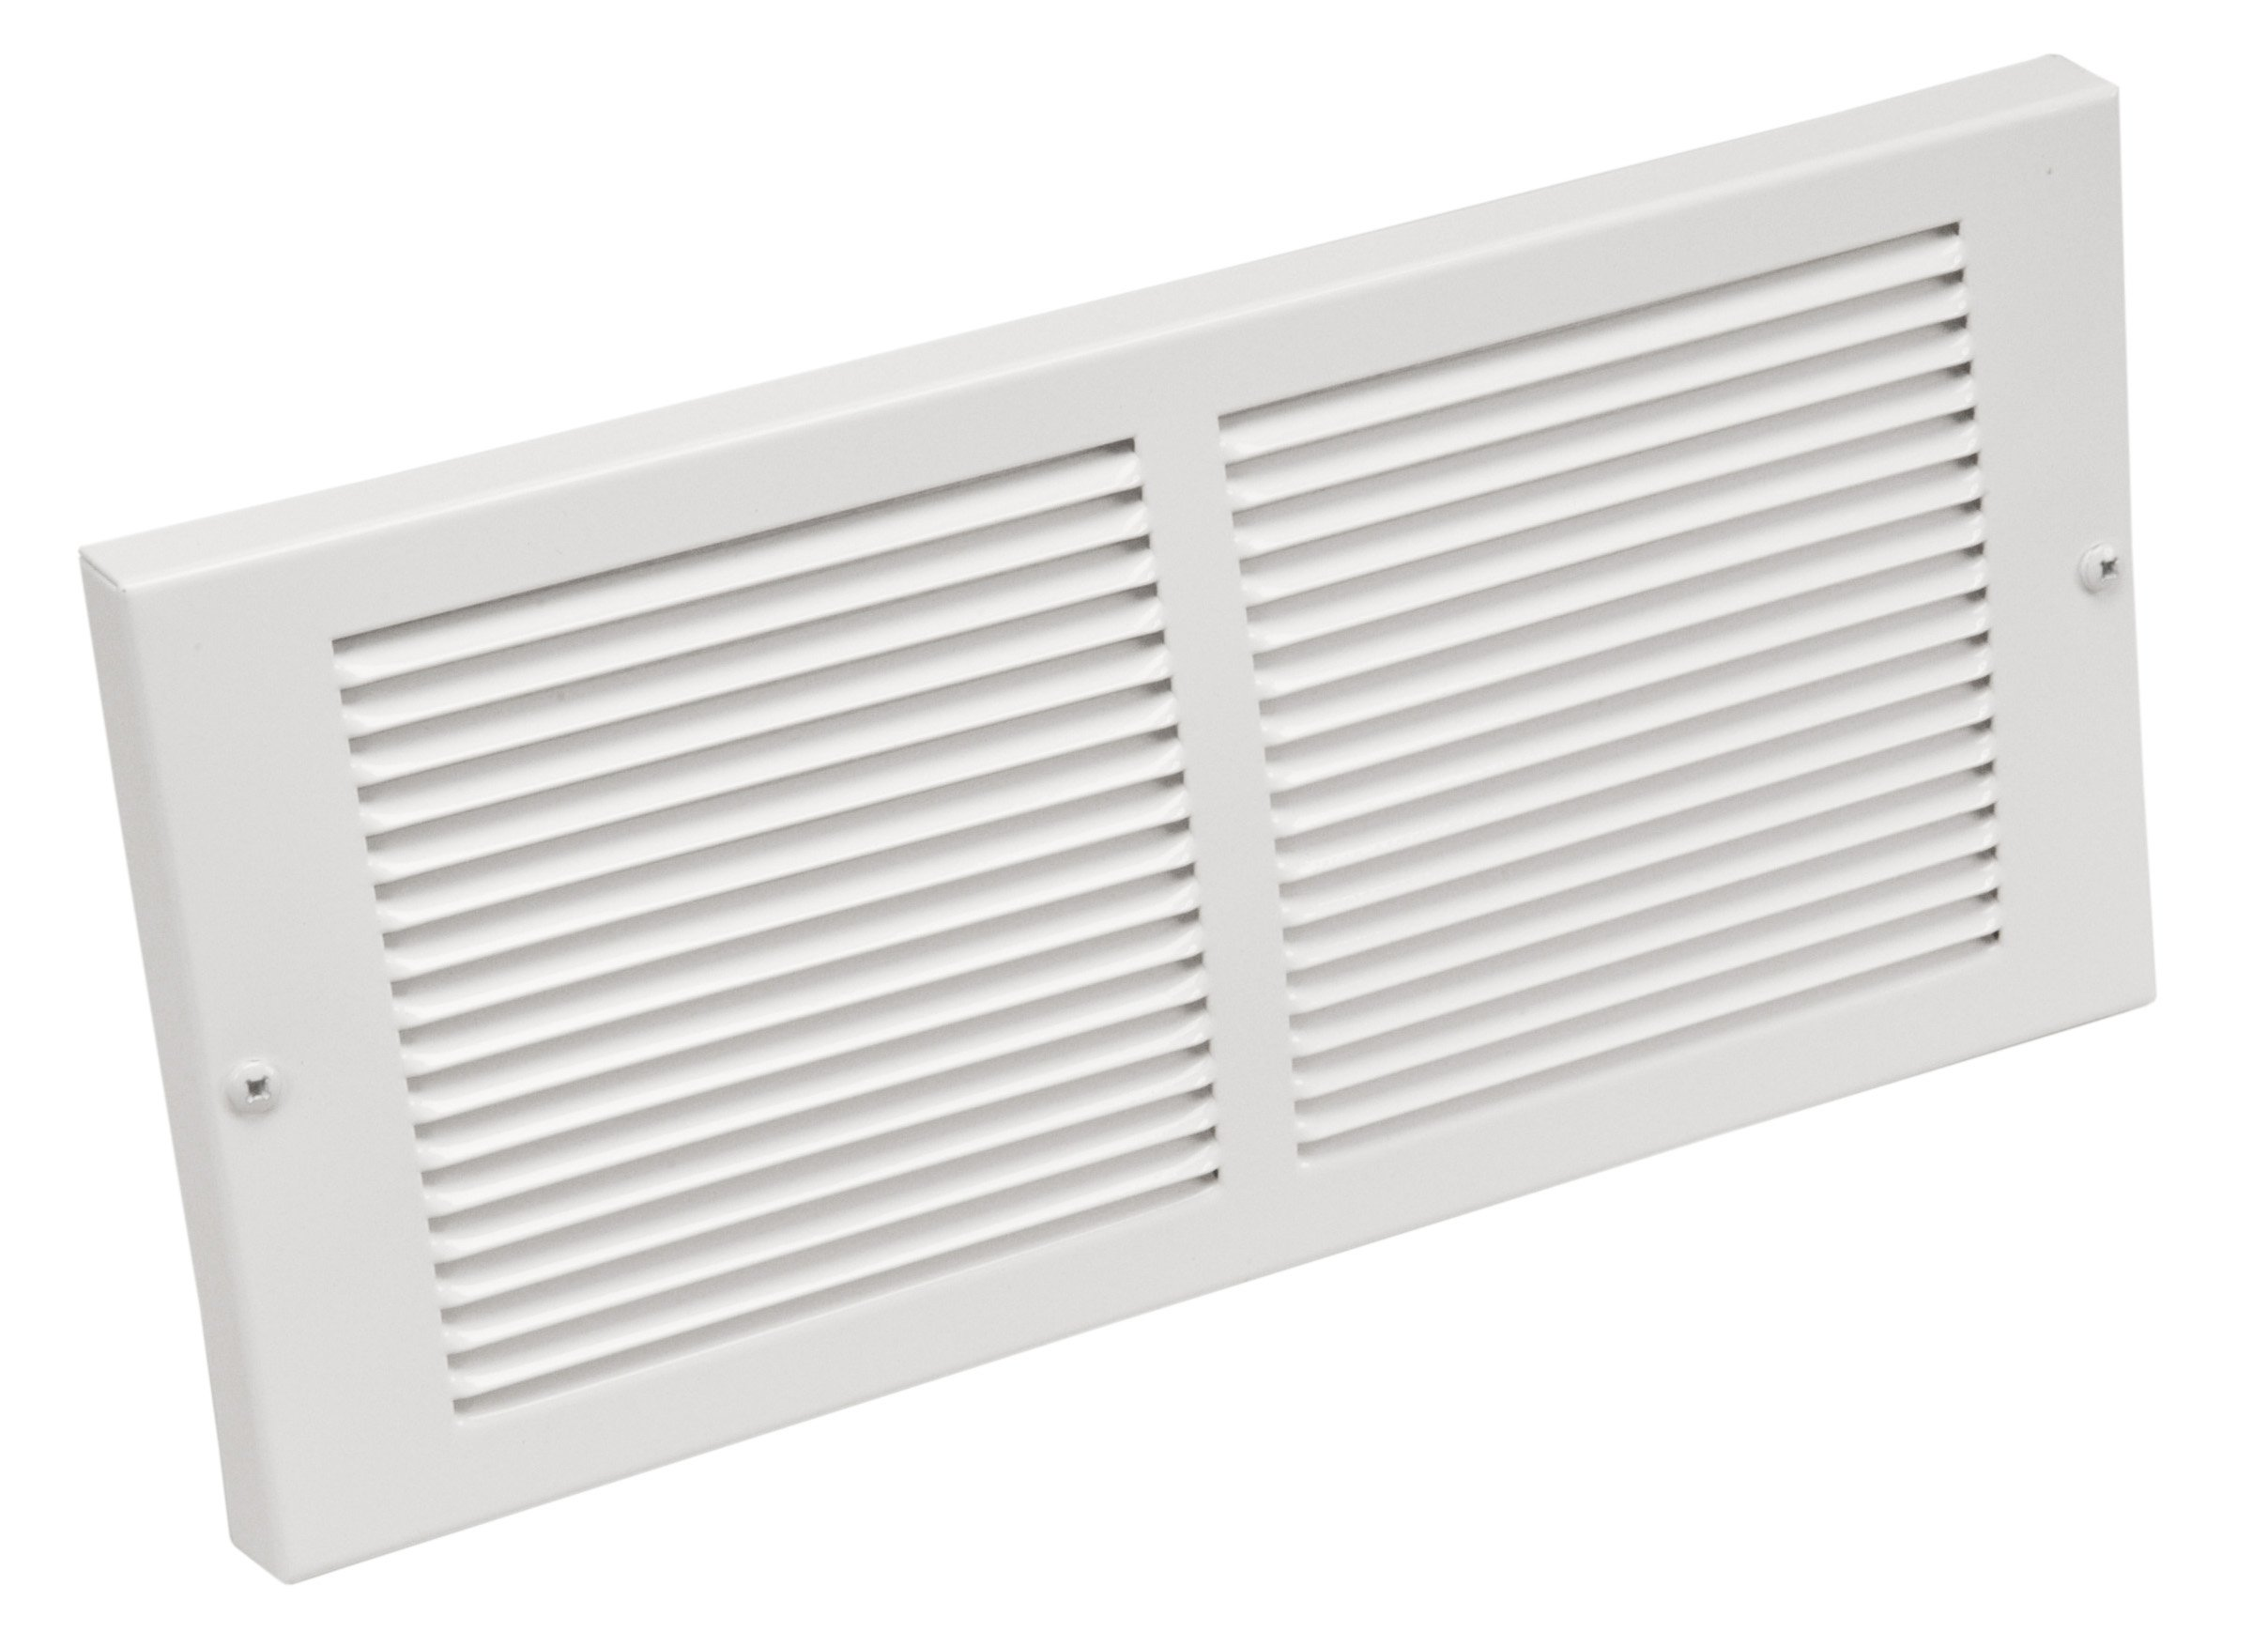 Imperial 14'' x 6'' Painted Metal Baseboard Grille, White, RG0033